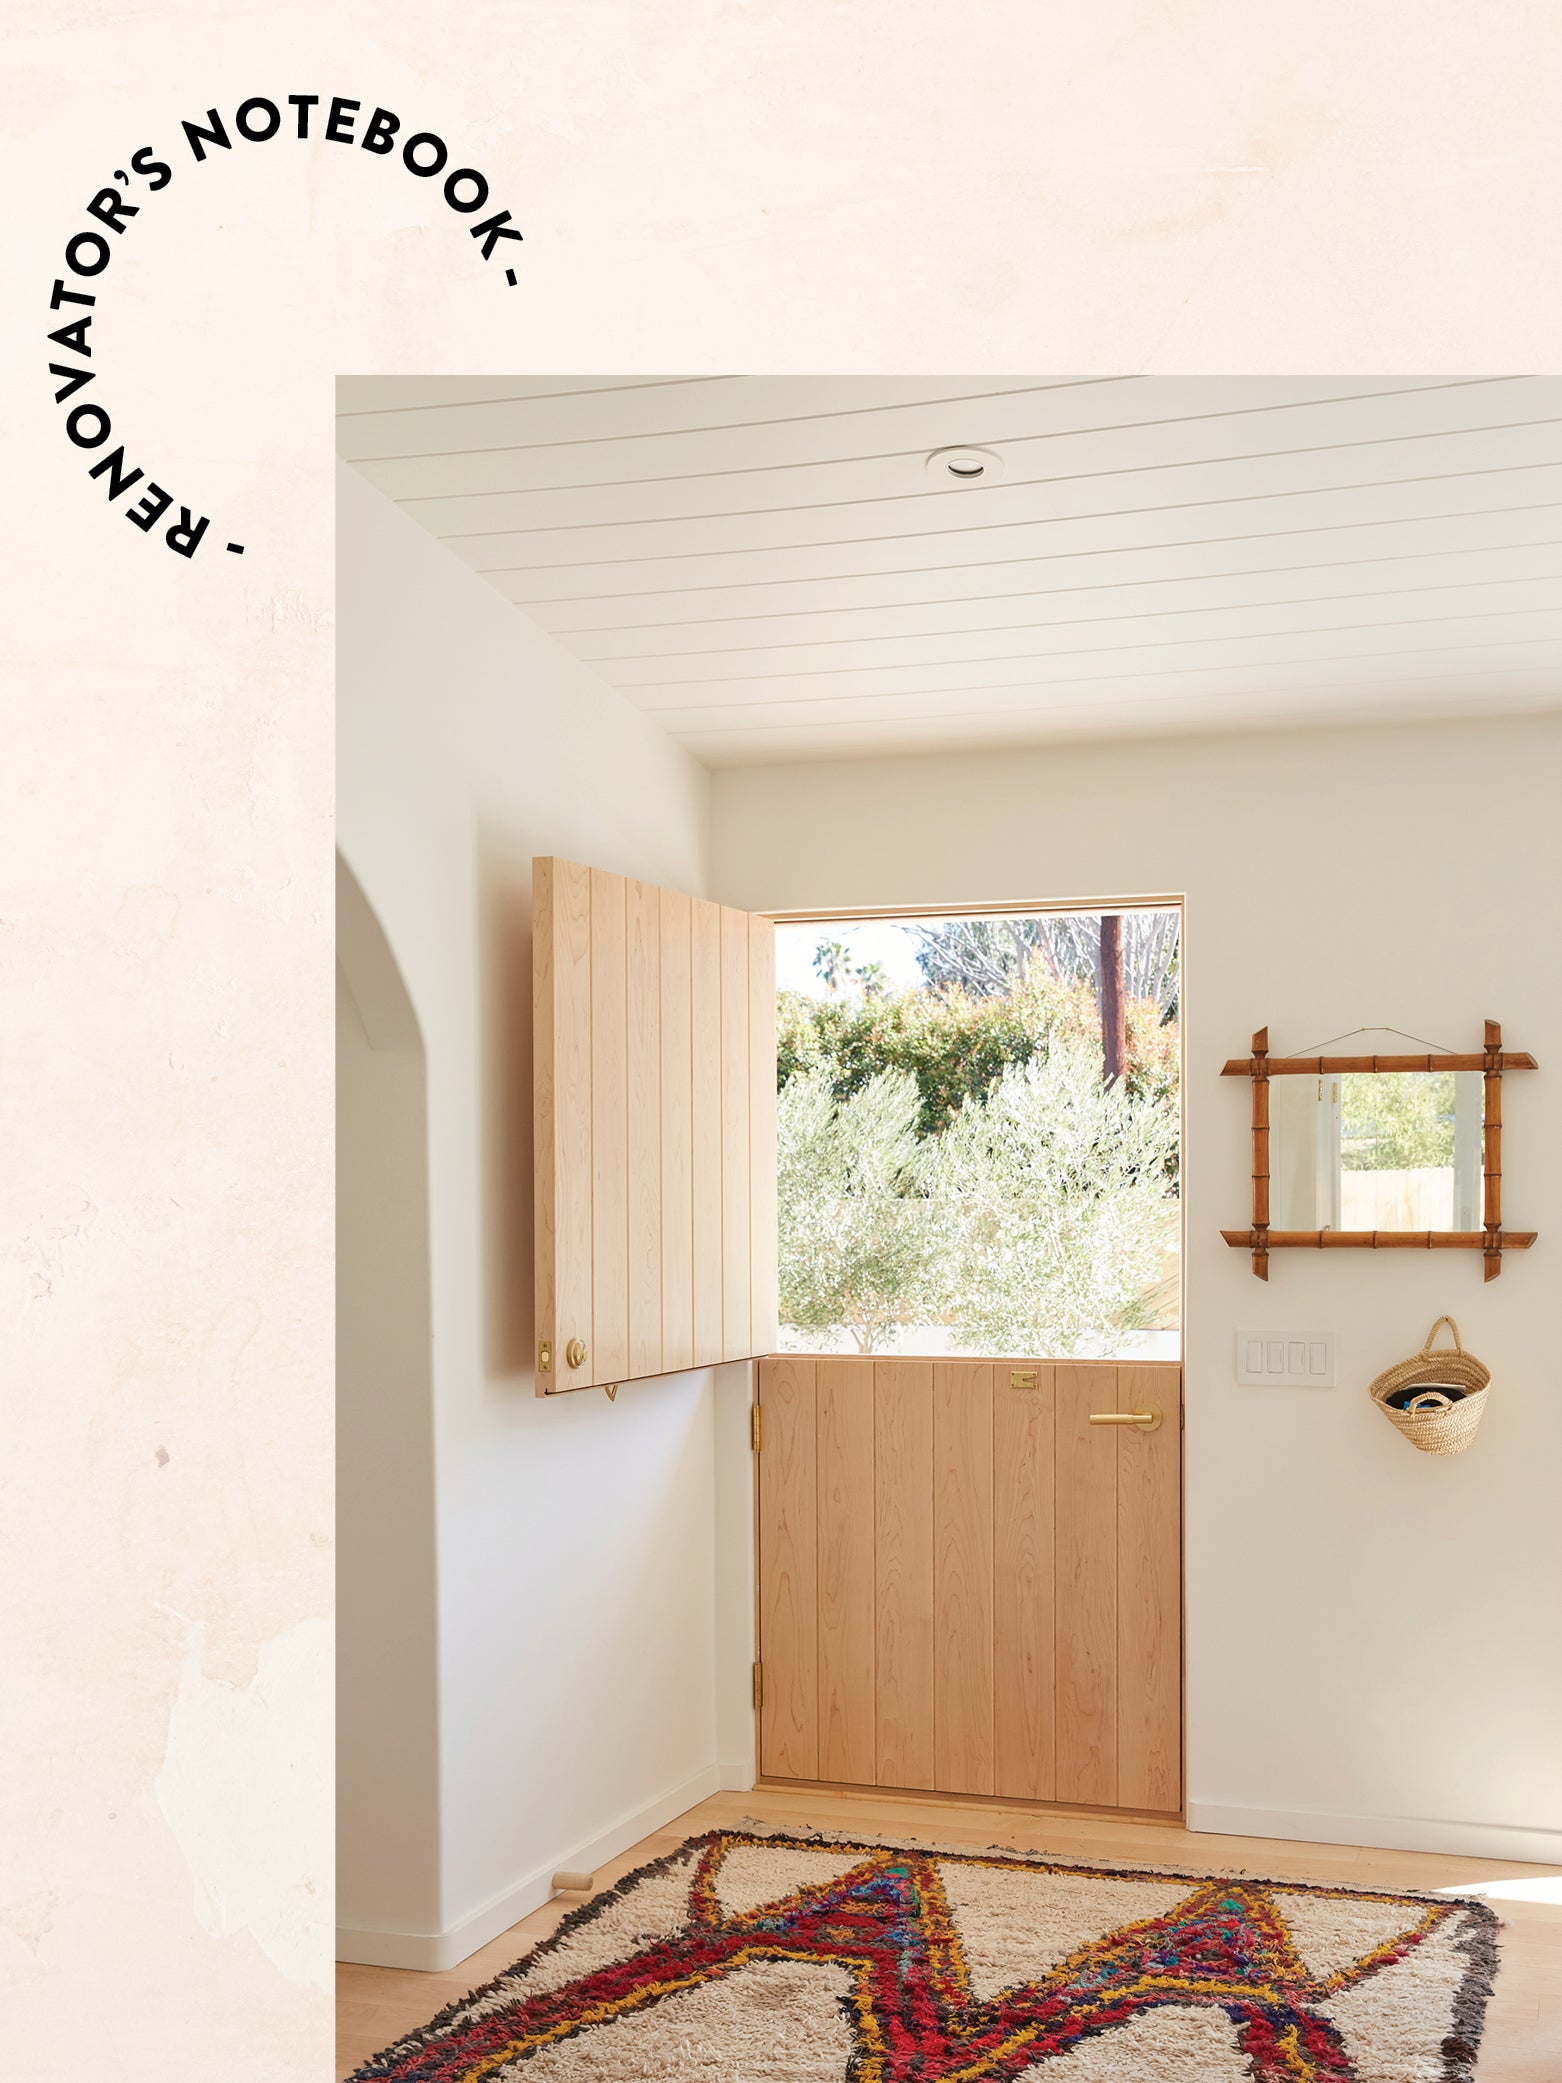 With $350K, I Gave My Ojai House Arches, Terrazzo Floors, and Even an Impromptu Dog Door